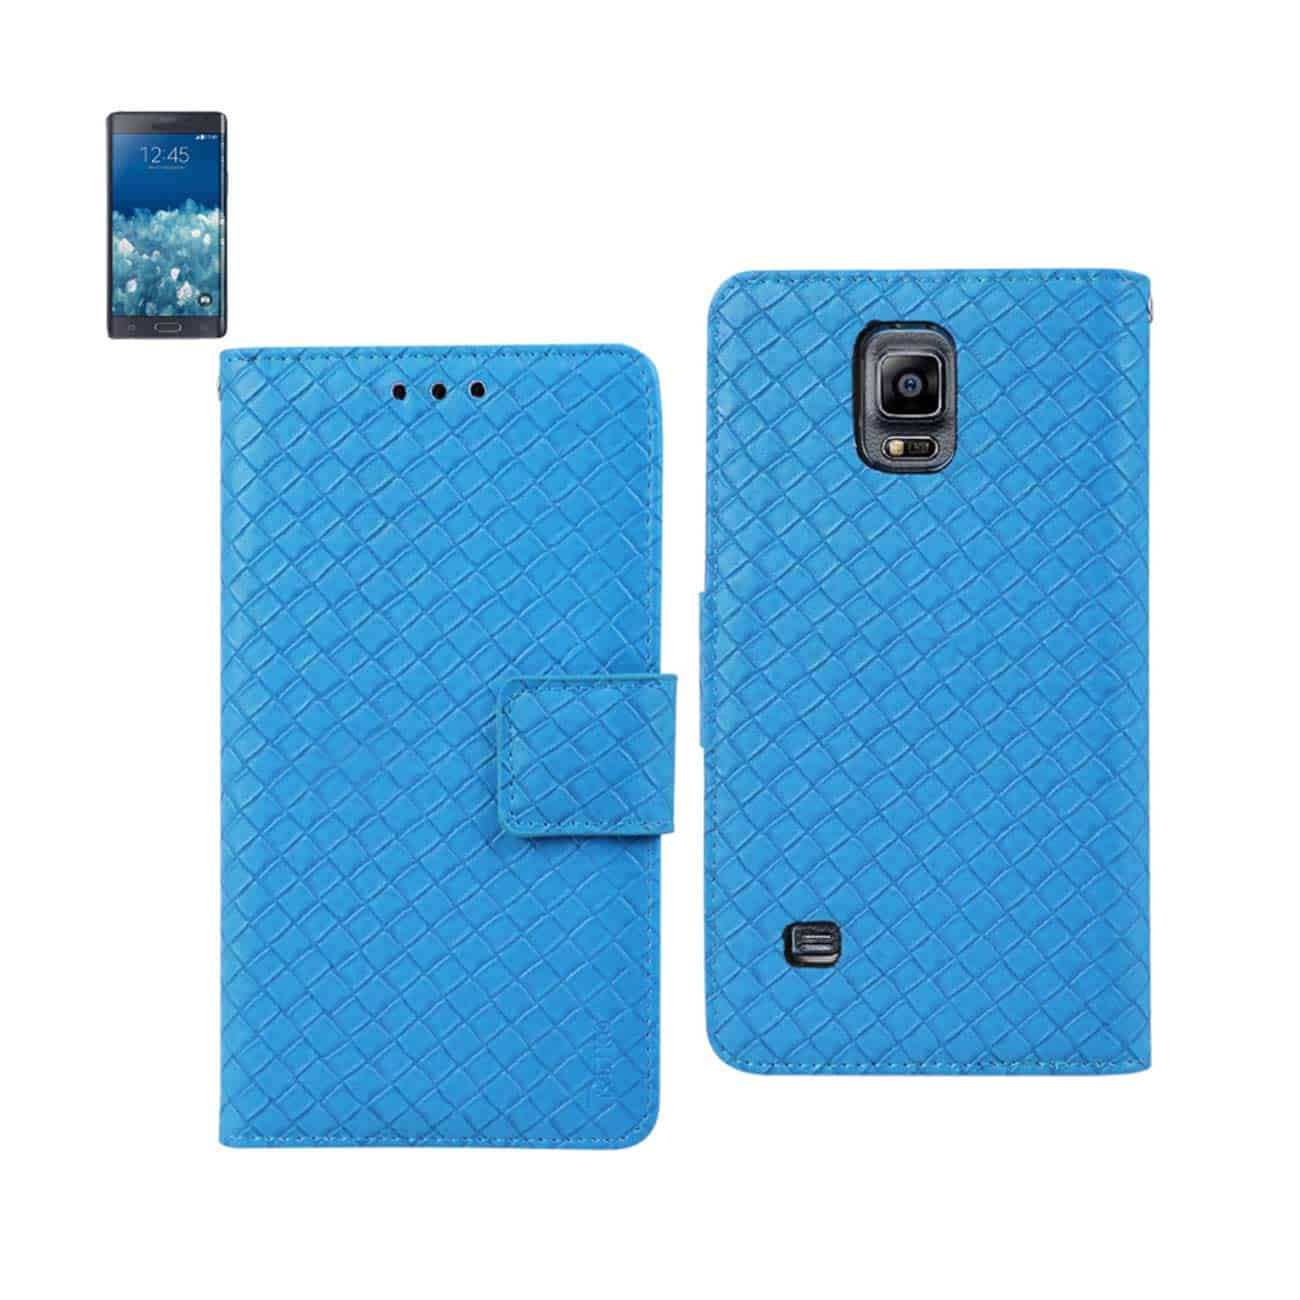 SAMSUNG GALAXY NOTE EDGE BRAIDED WALLET CASE IN BLUE